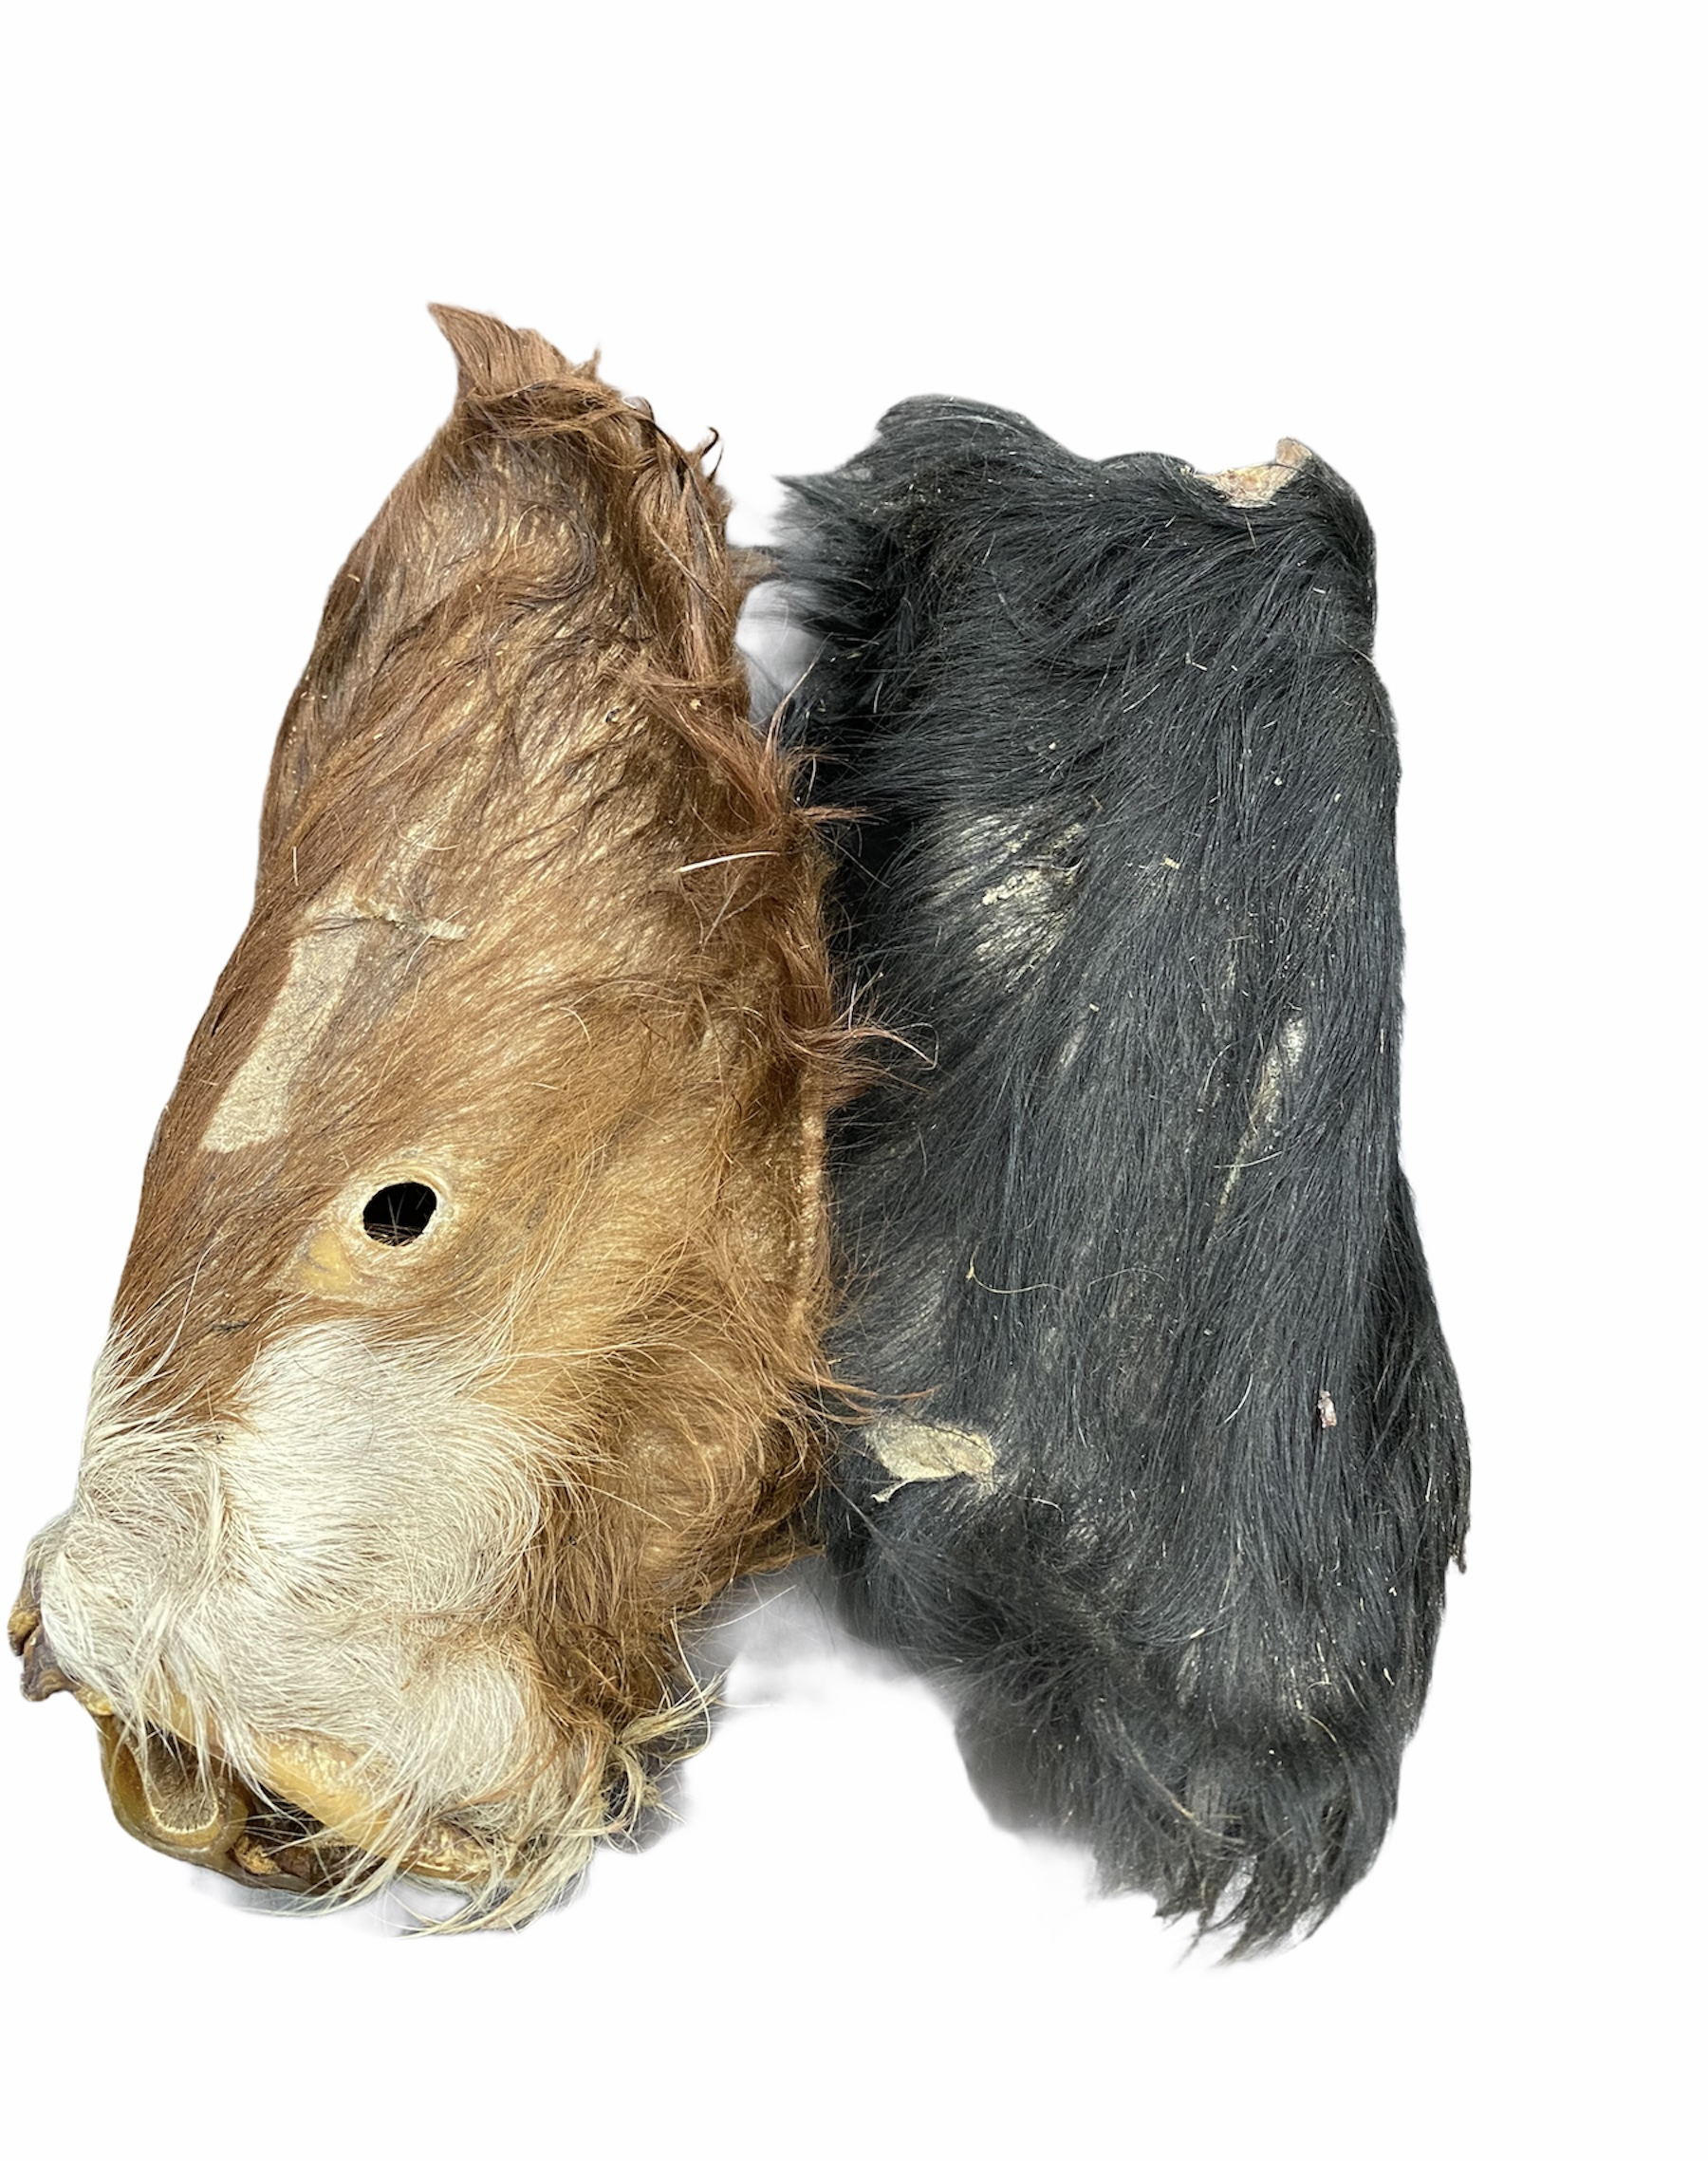 Cows Ears with fur